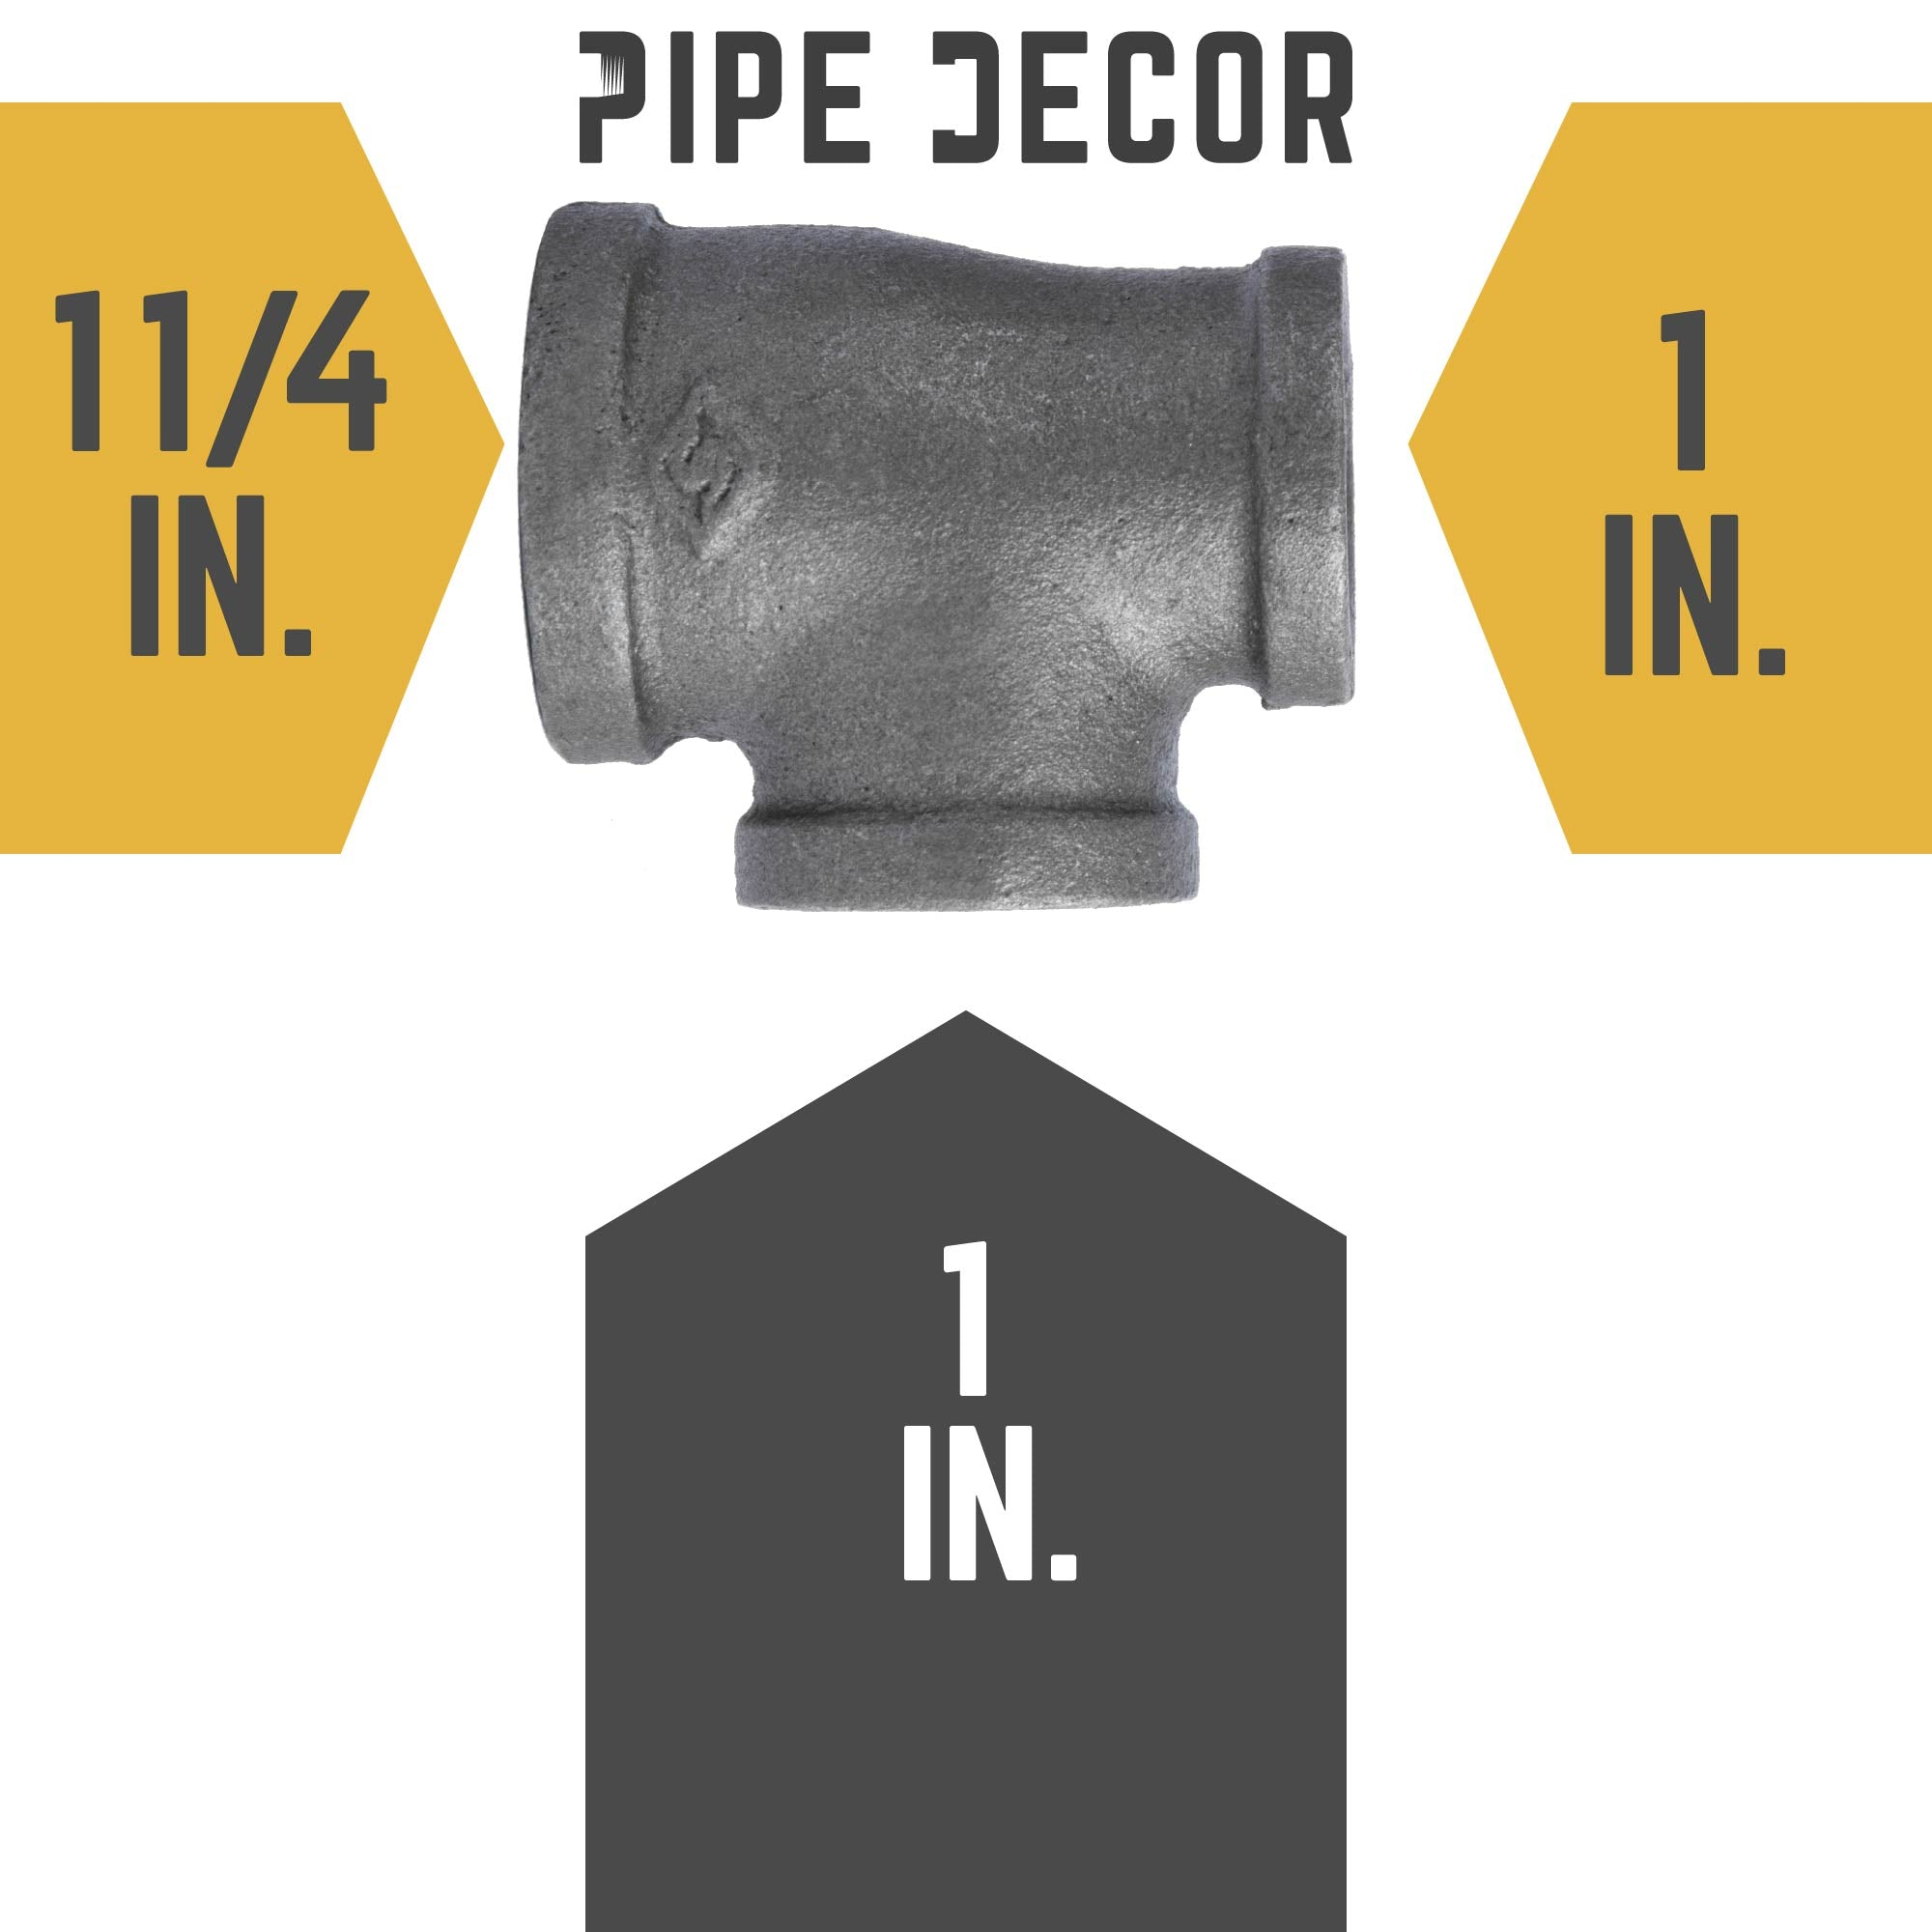 1 1/4 in. X 1 in. X 1 in. Black Reducing Tee - Pipe Decor